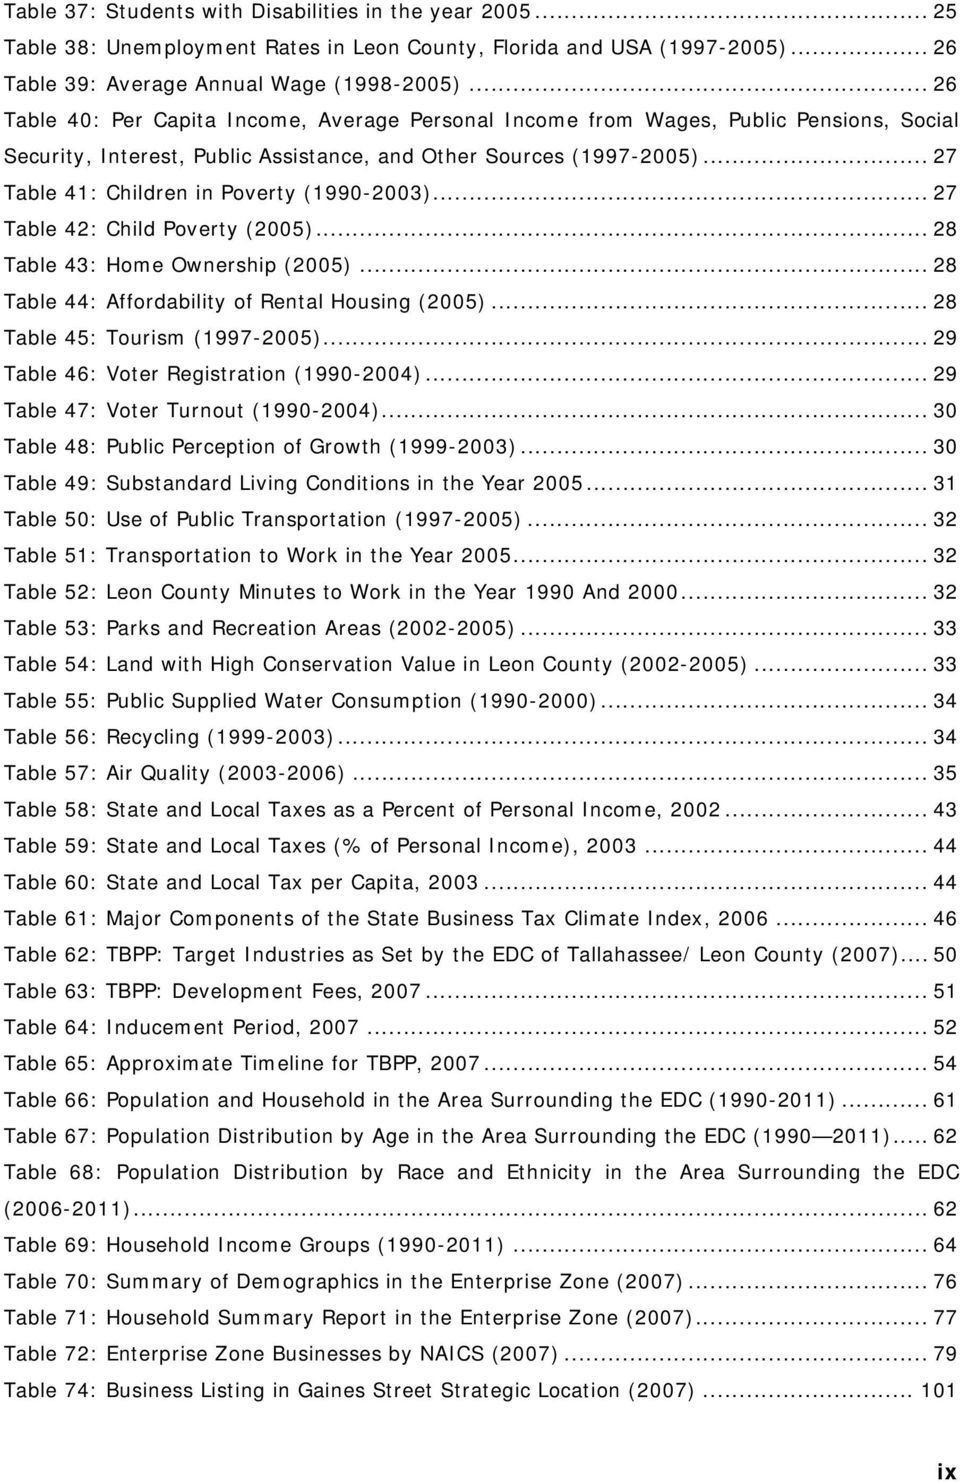 .. 27 Table 41: Children in Poverty (1990-2003)... 27 Table 42: Child Poverty (2005)... 28 Table 43: Home Ownership (2005)... 28 Table 44: Affordability of Rental Housing (2005).